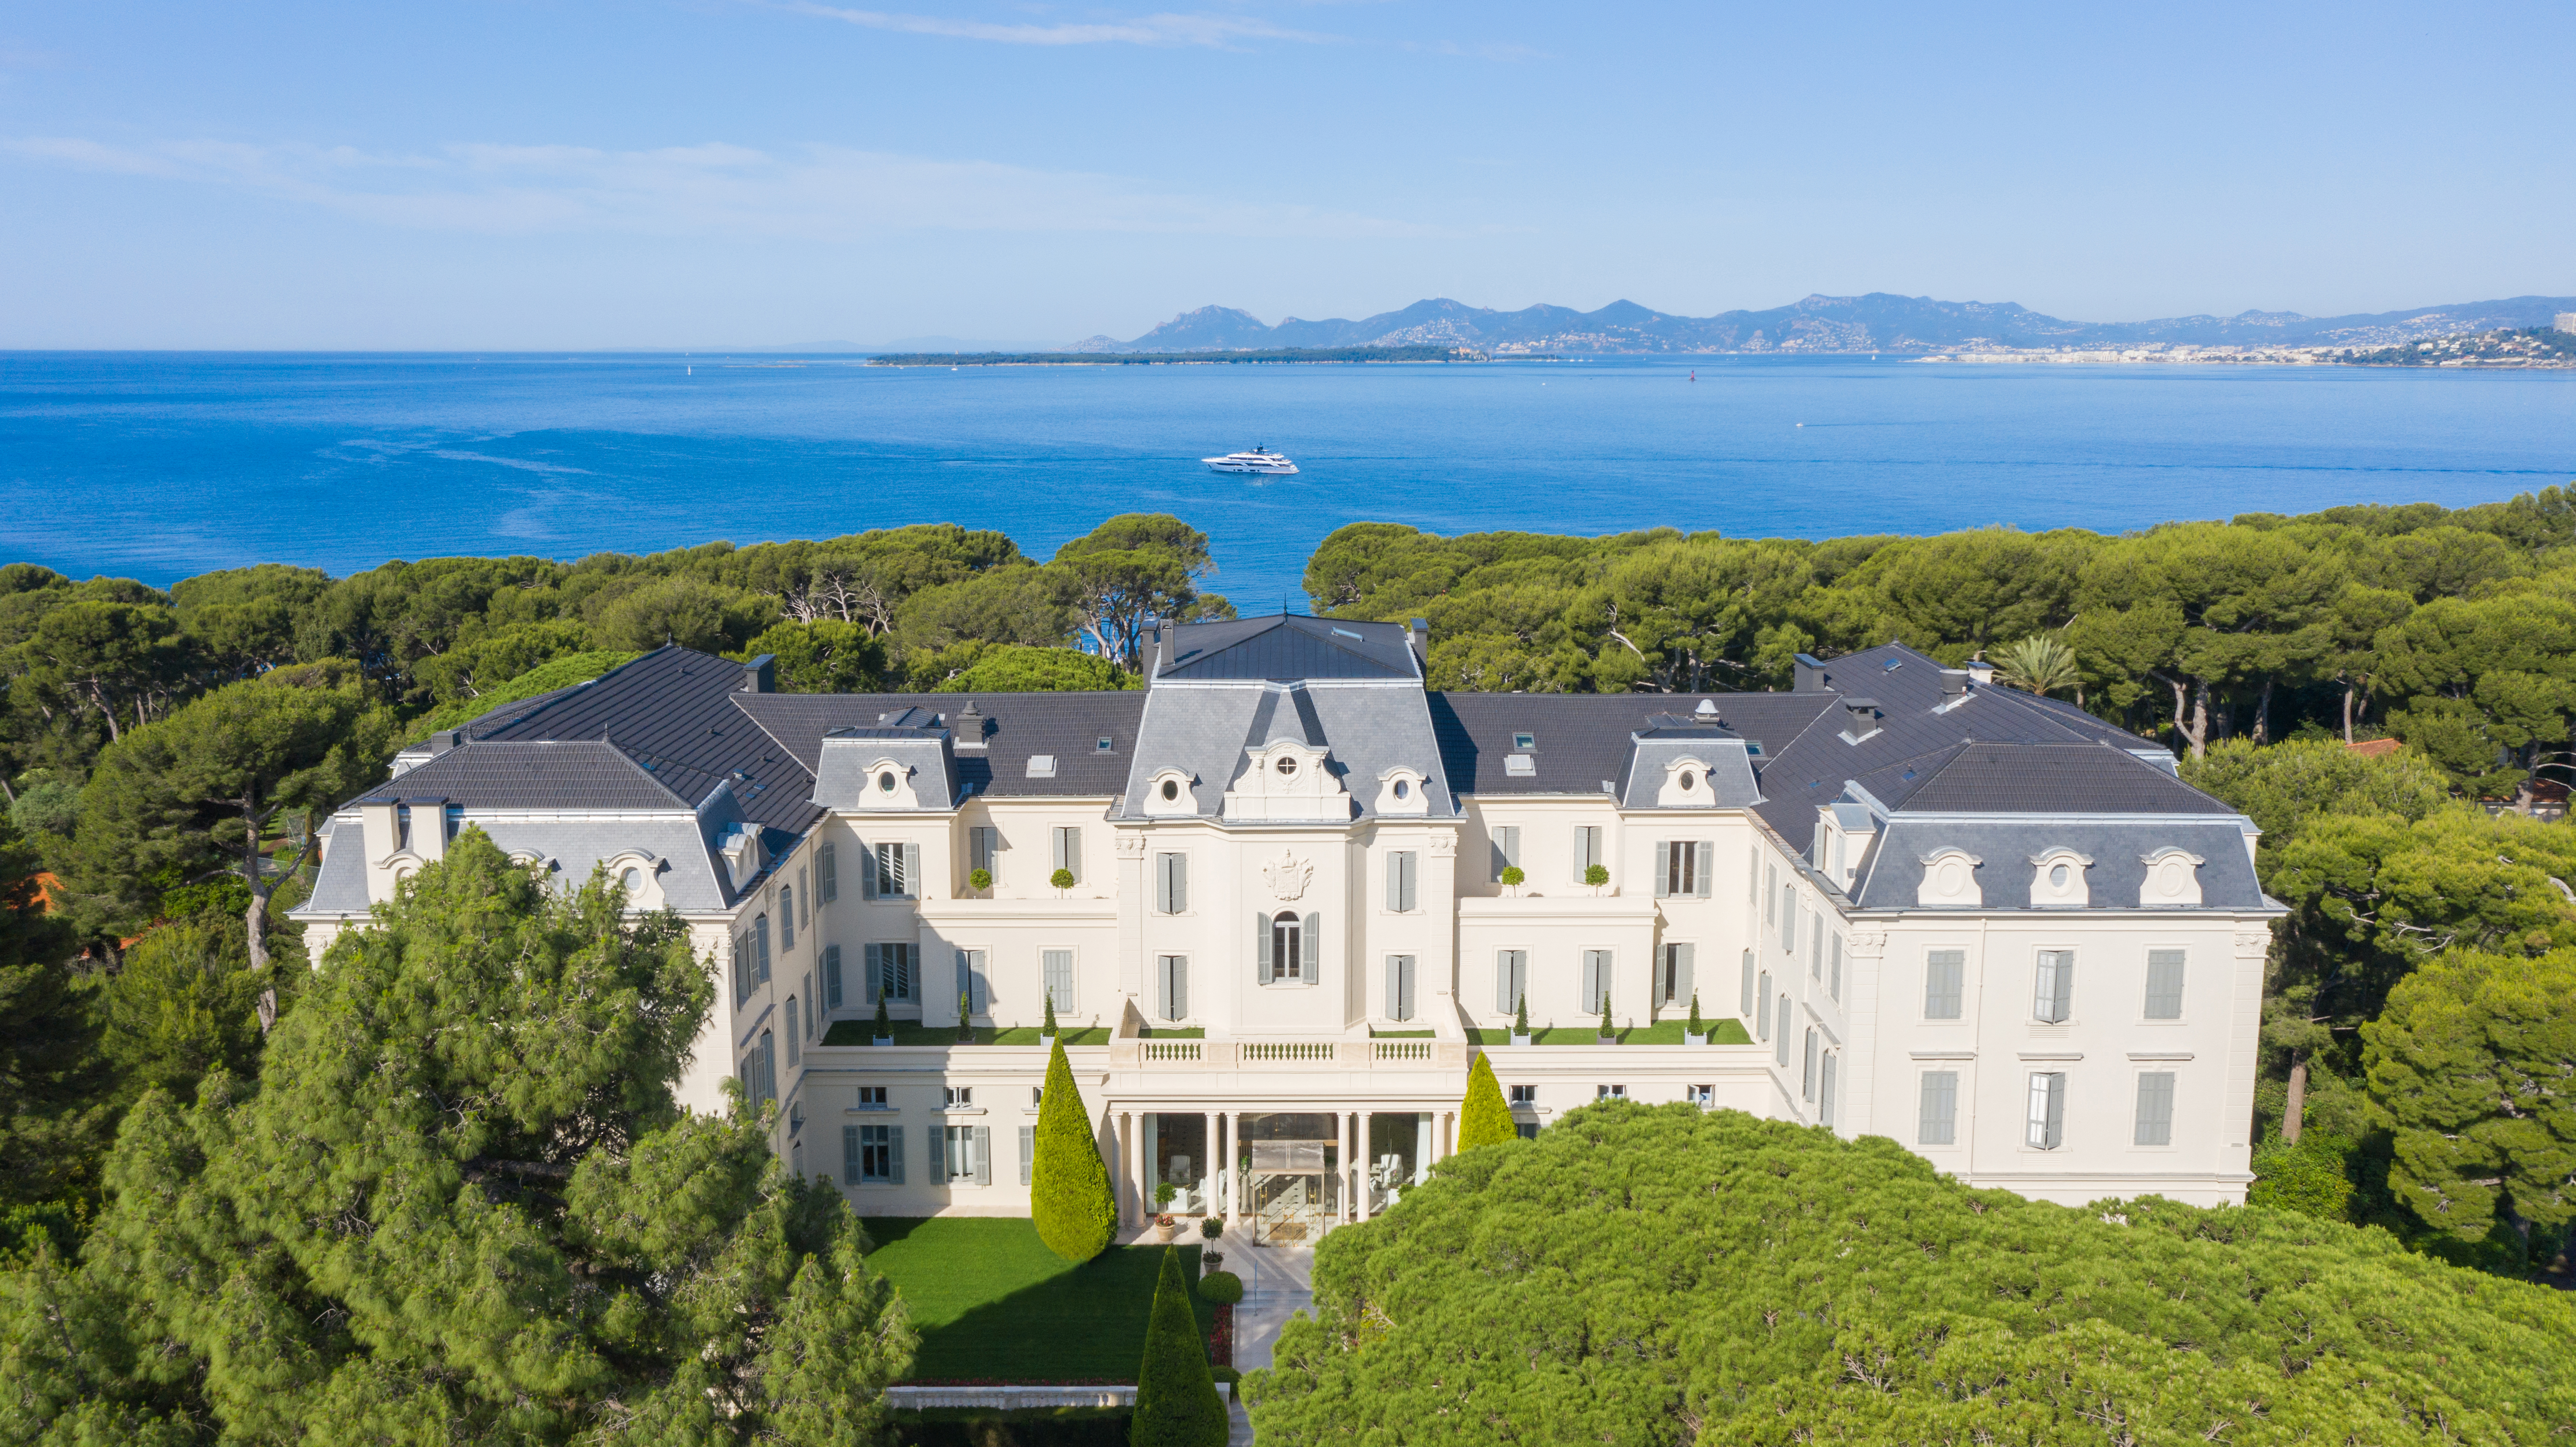 Hotel Du Cap Eden Roc Luxury Hotel In Antibes France